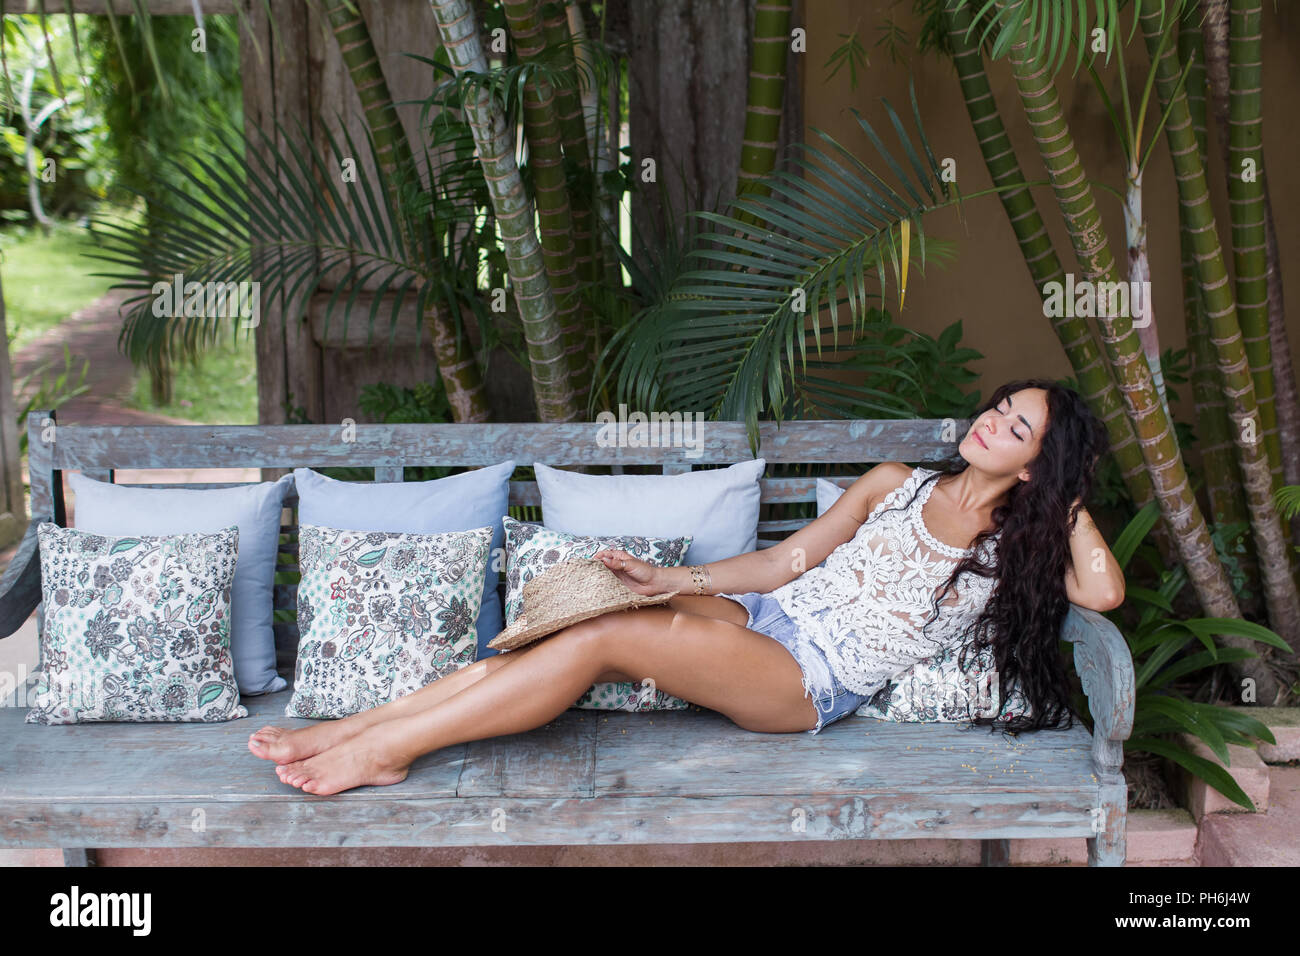 Beautiful young woman with long black hair relaxing on sofa with straw hat - Stock Image